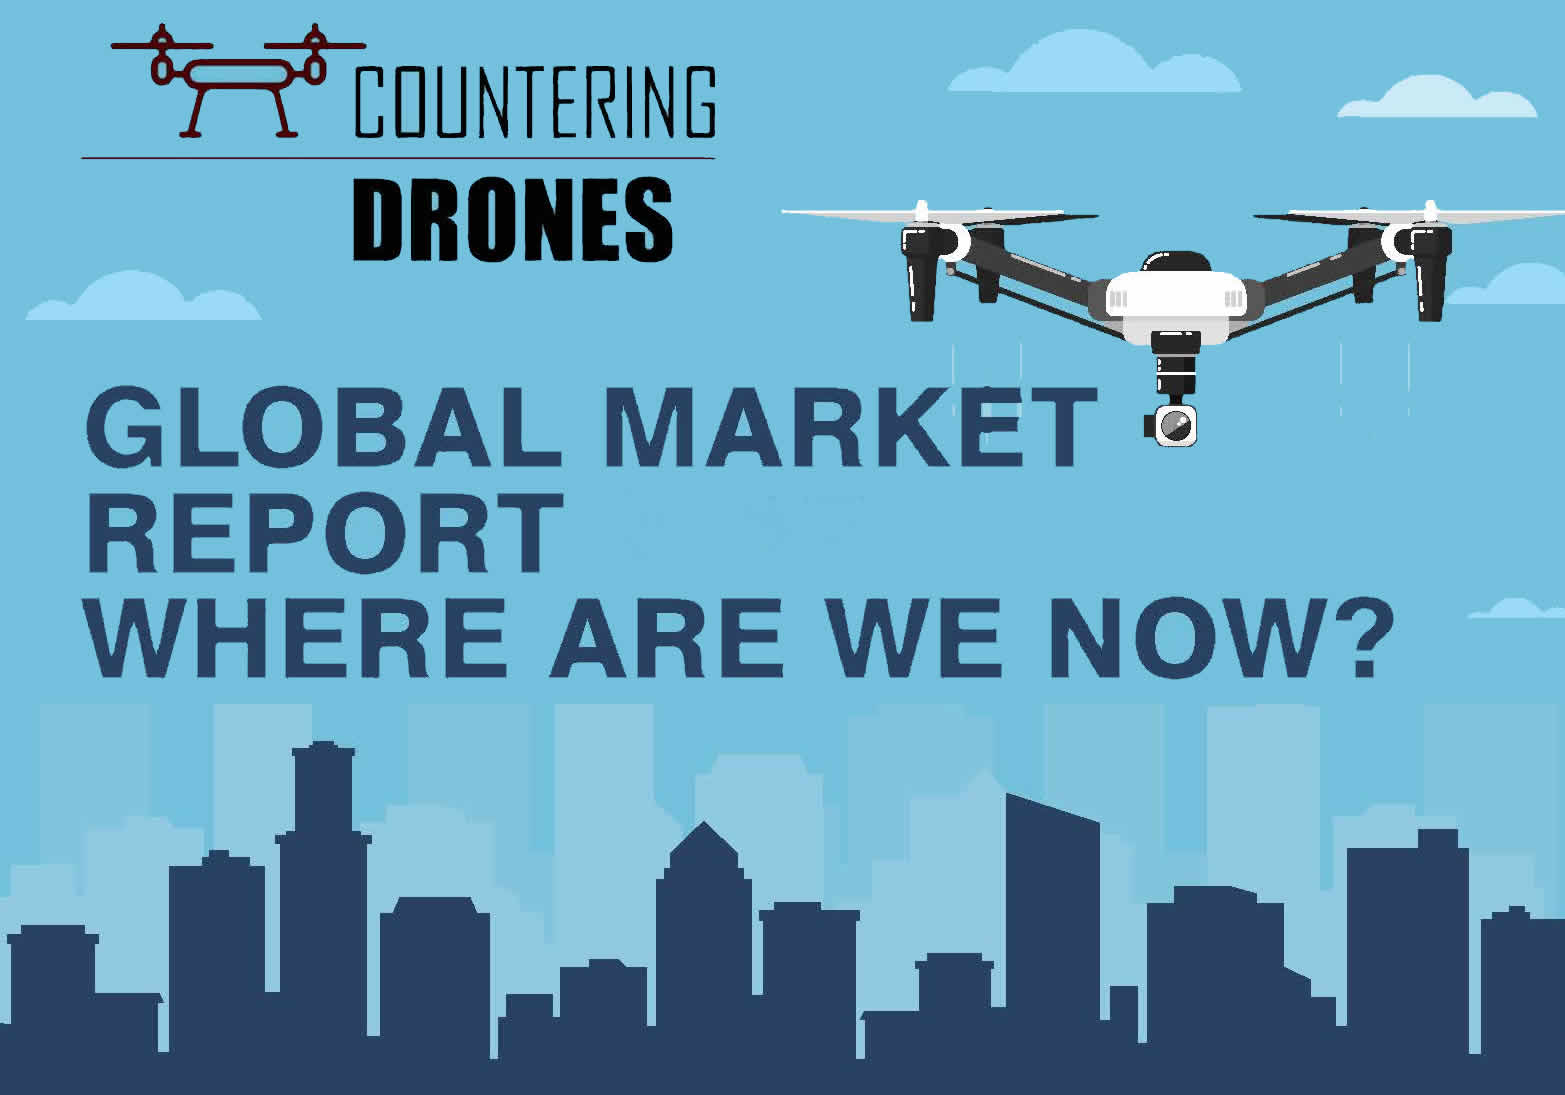 Global Countering Drones Market Report